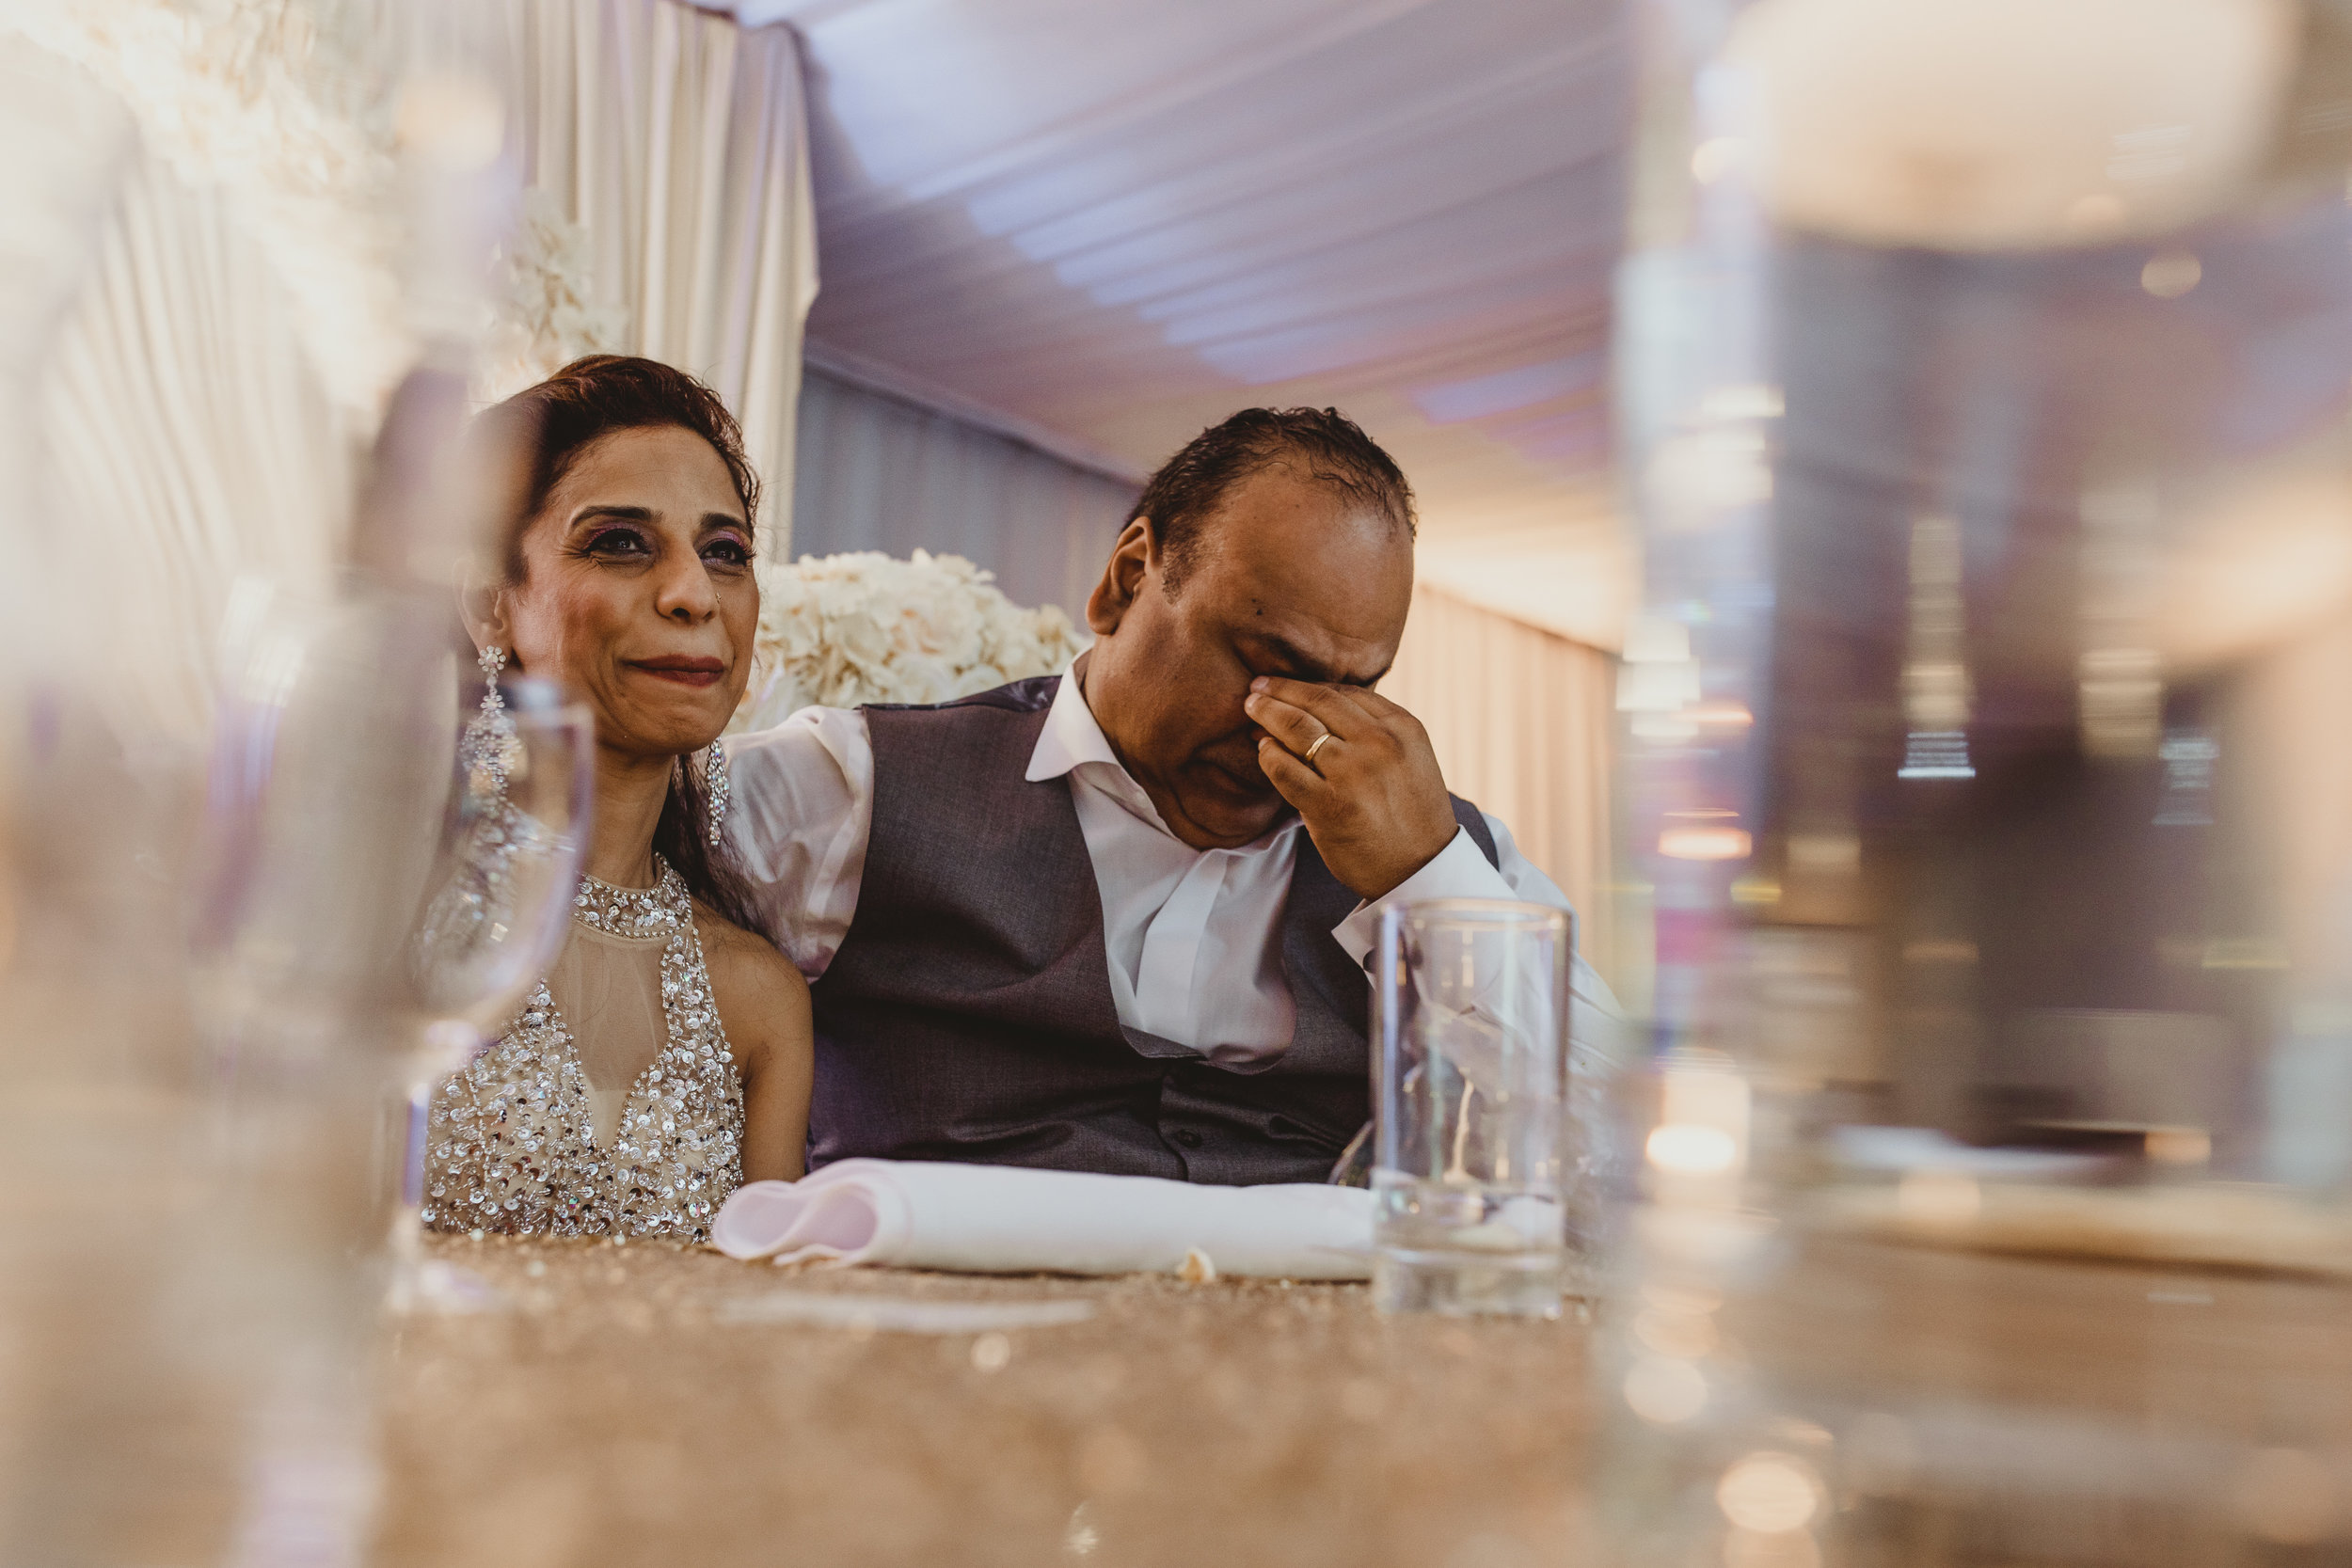 N&J_MILTON_KEYNES_WEDDING_LONDON_PHOTOGRAPHER_ASIAN_WEDDING-1180.JPG